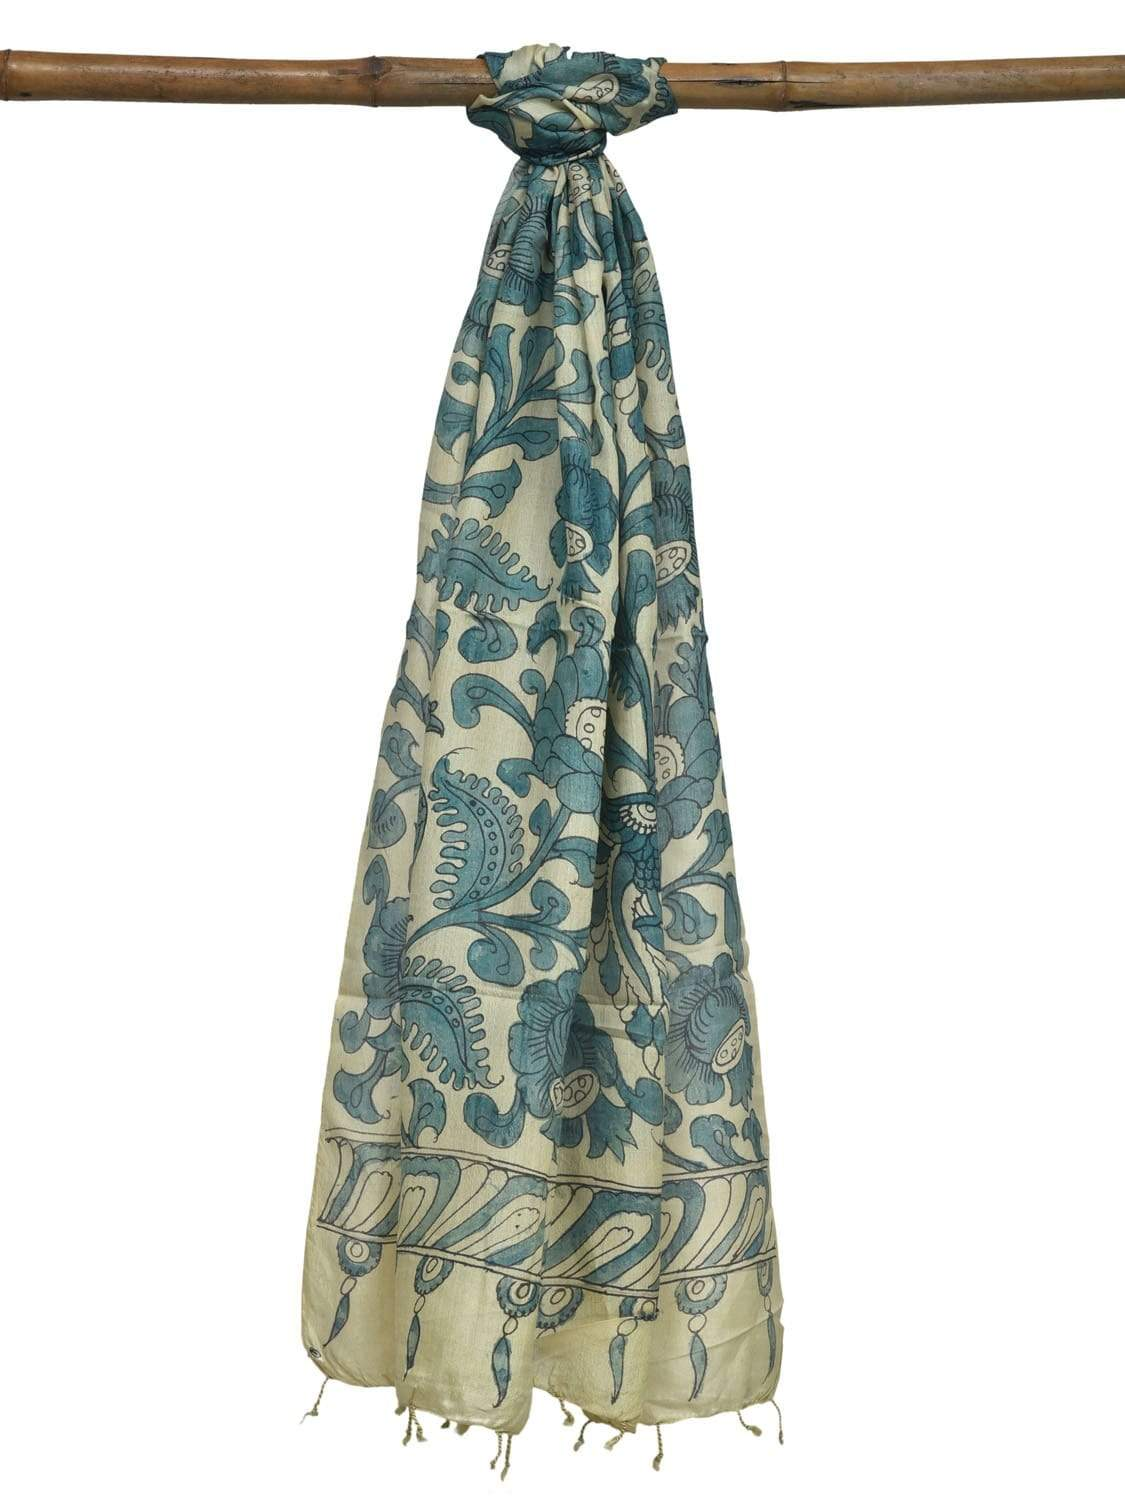 Cream and Blue Kalamkari Hand Painted Tussar Handloom Dupatta with Floral and Birds Design ds1916